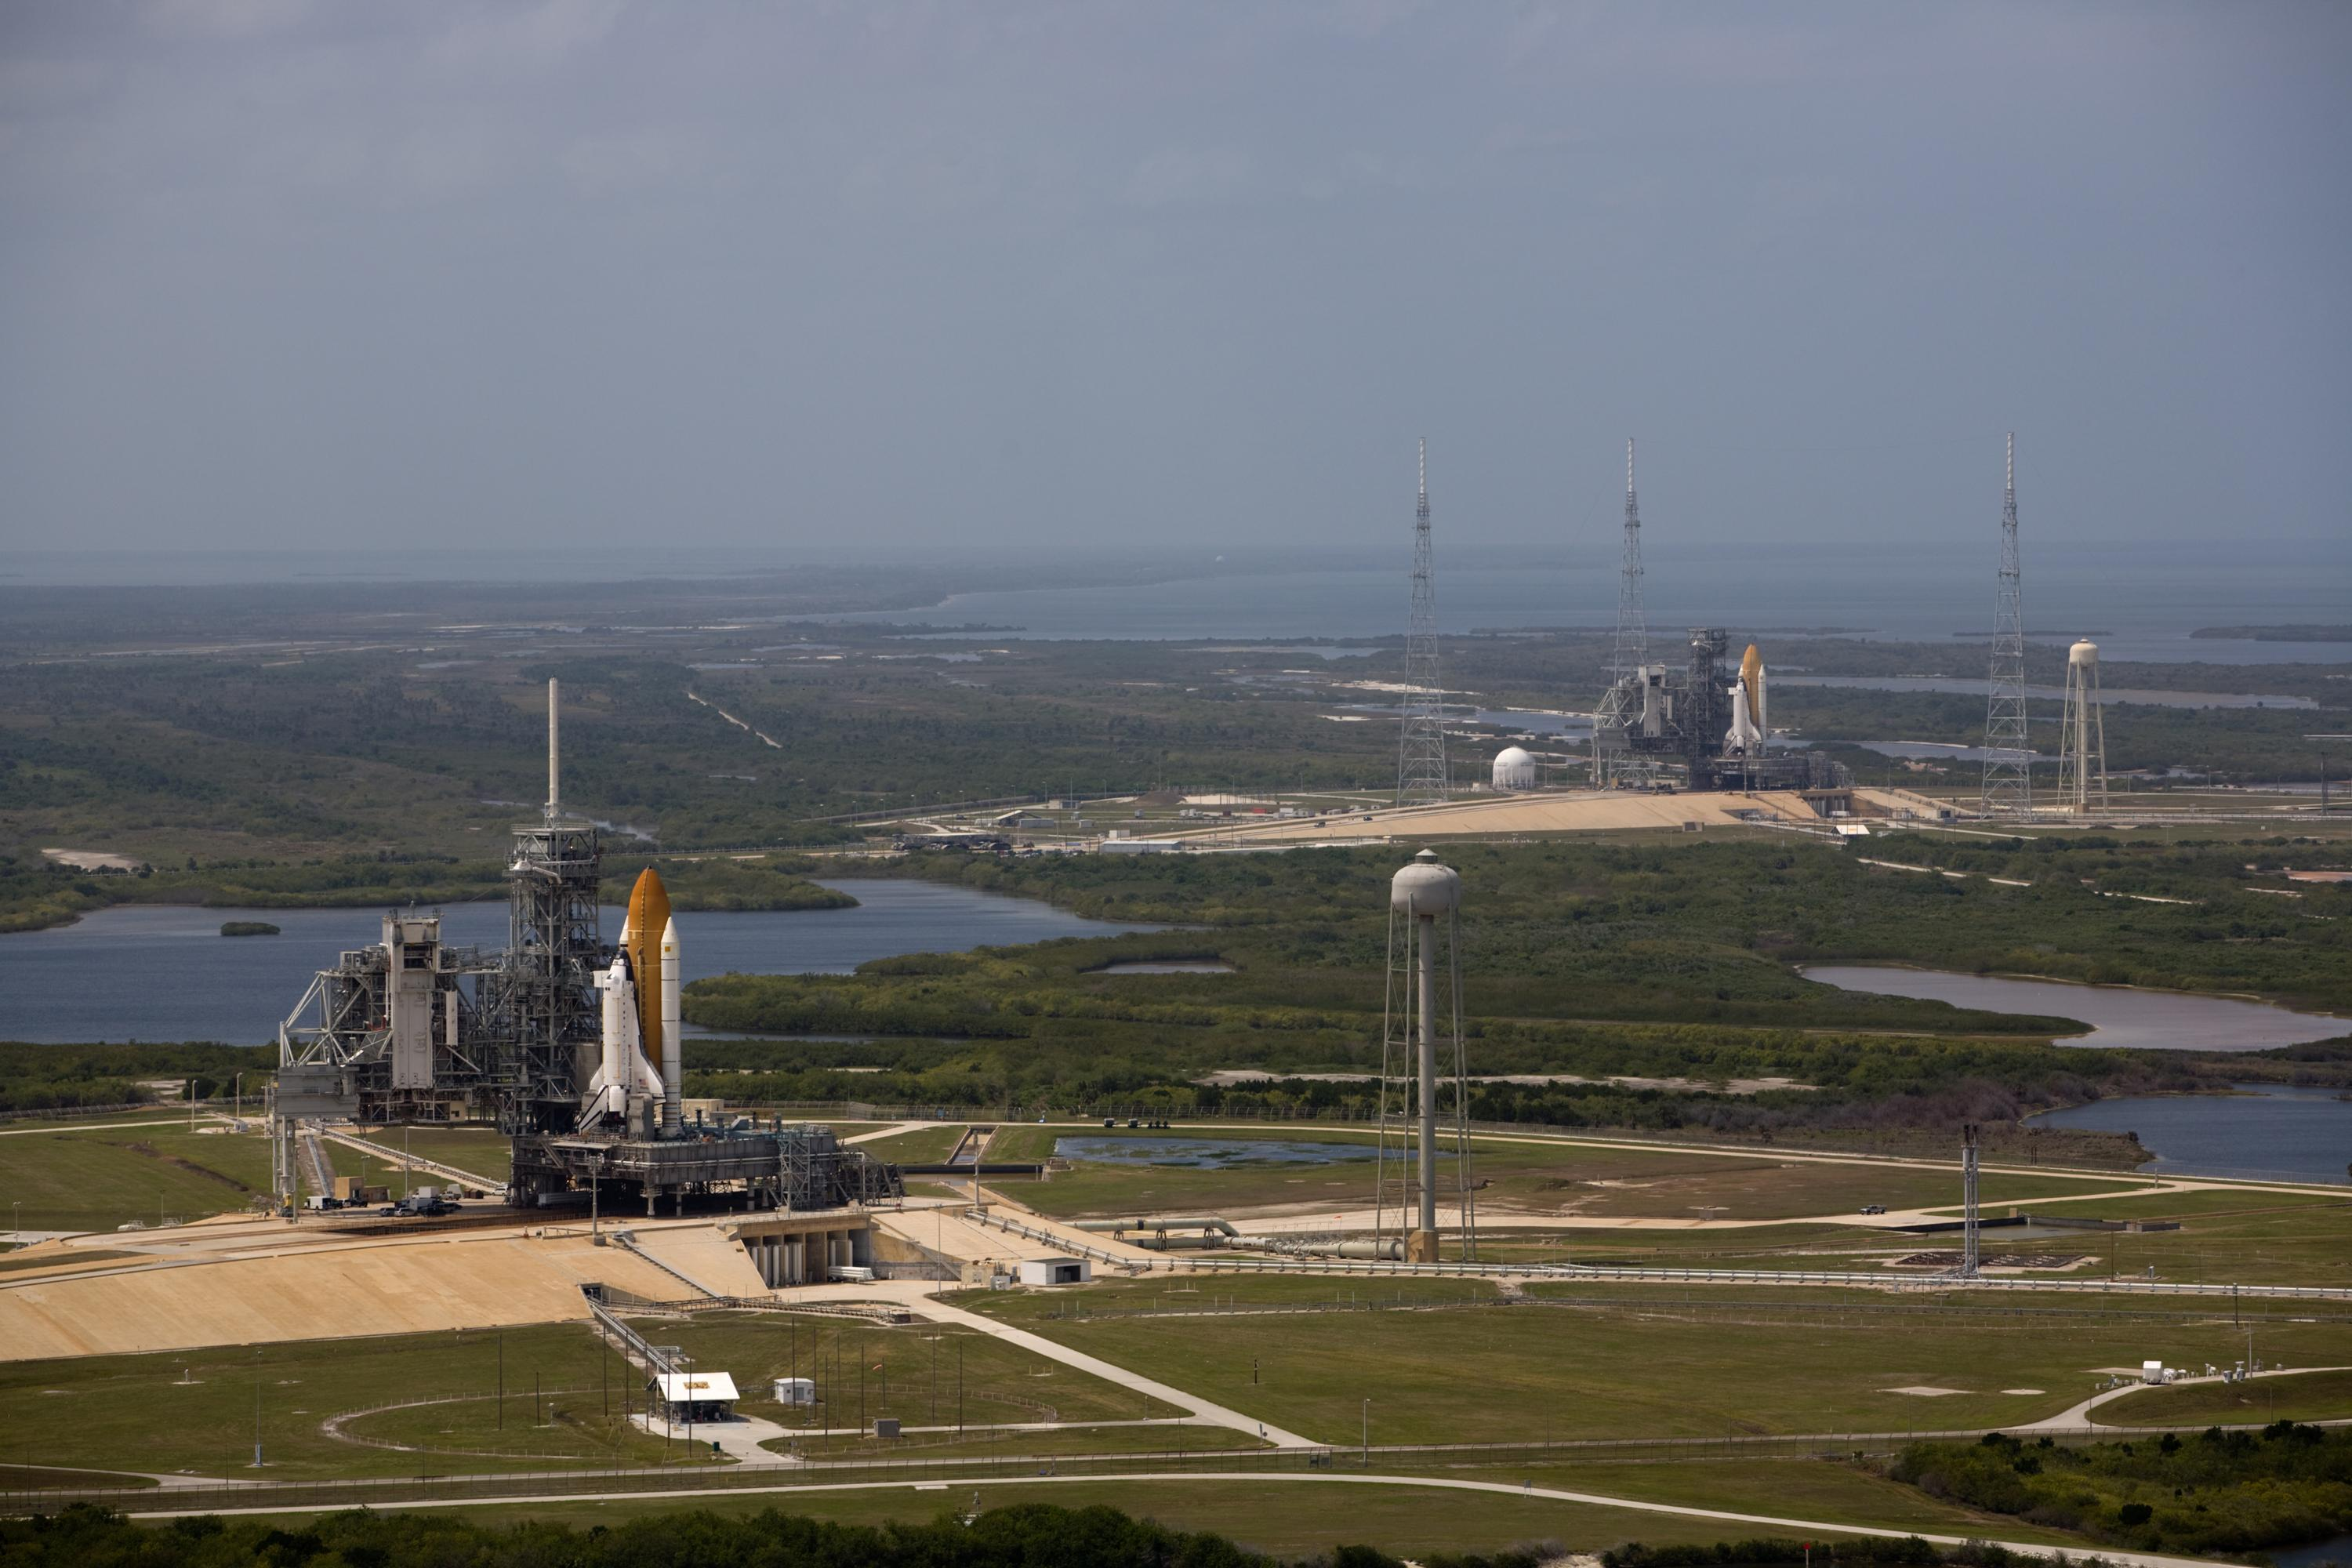 "<em>Atlantis</em> prepares at pad 39A in foreground for her mission to service <a href=""https://en.wikipedia.org/wiki/STS-125"">the Hubble Space Telescope</a>, while <em>Endeavour</em> stands ready to fly a <a href=""https://en.wikipedia.org/wiki/STS-400"">rescue mission</a> if needed from 39B in background. This is the fourth and final time in the shuttle program that two orbiters were simultaneously on the pads at LC39."